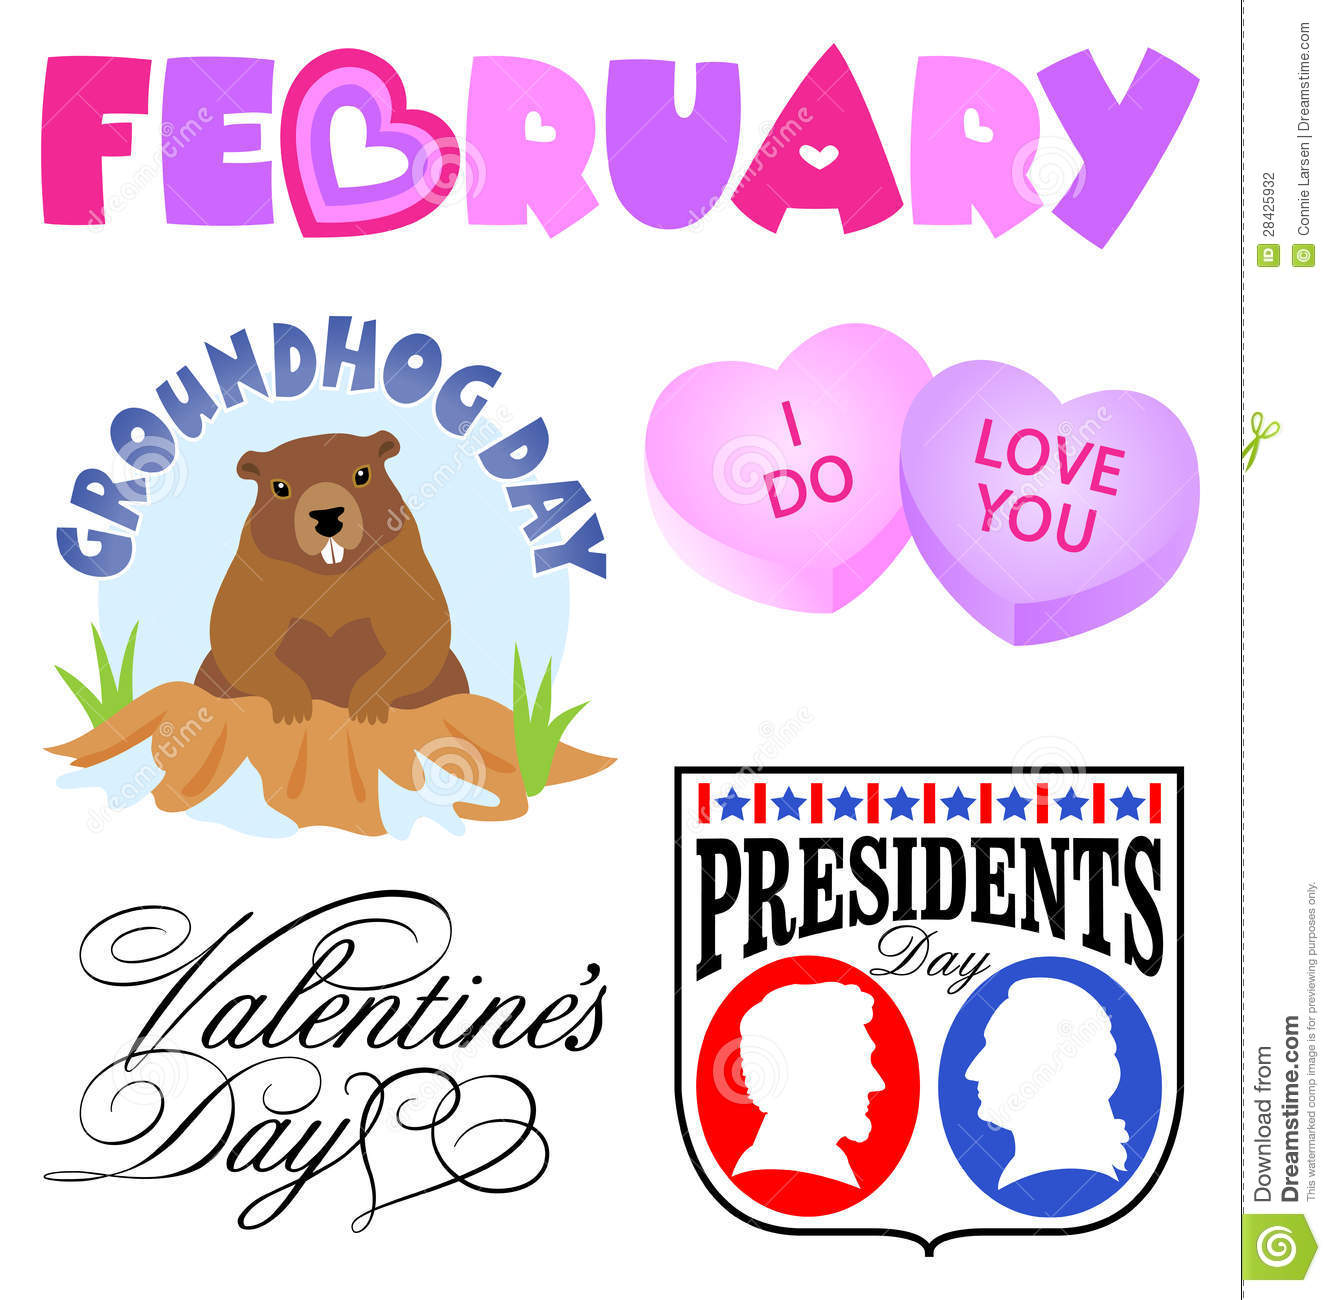 Free Clip Art February - ClipartFest-Free clip art february - ClipartFest-14